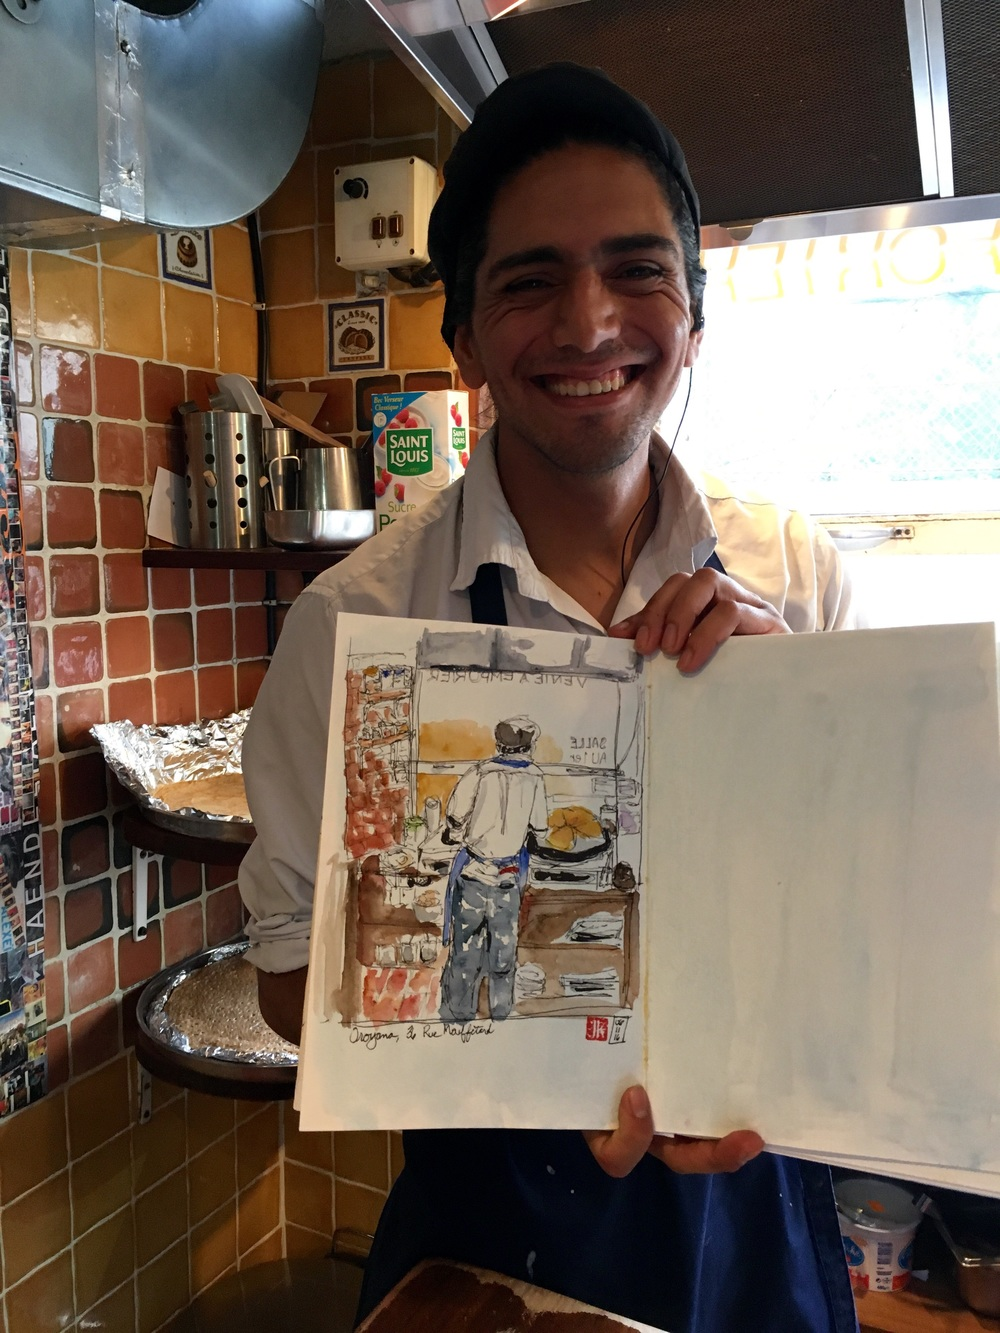 The happy cook posing with my drawing